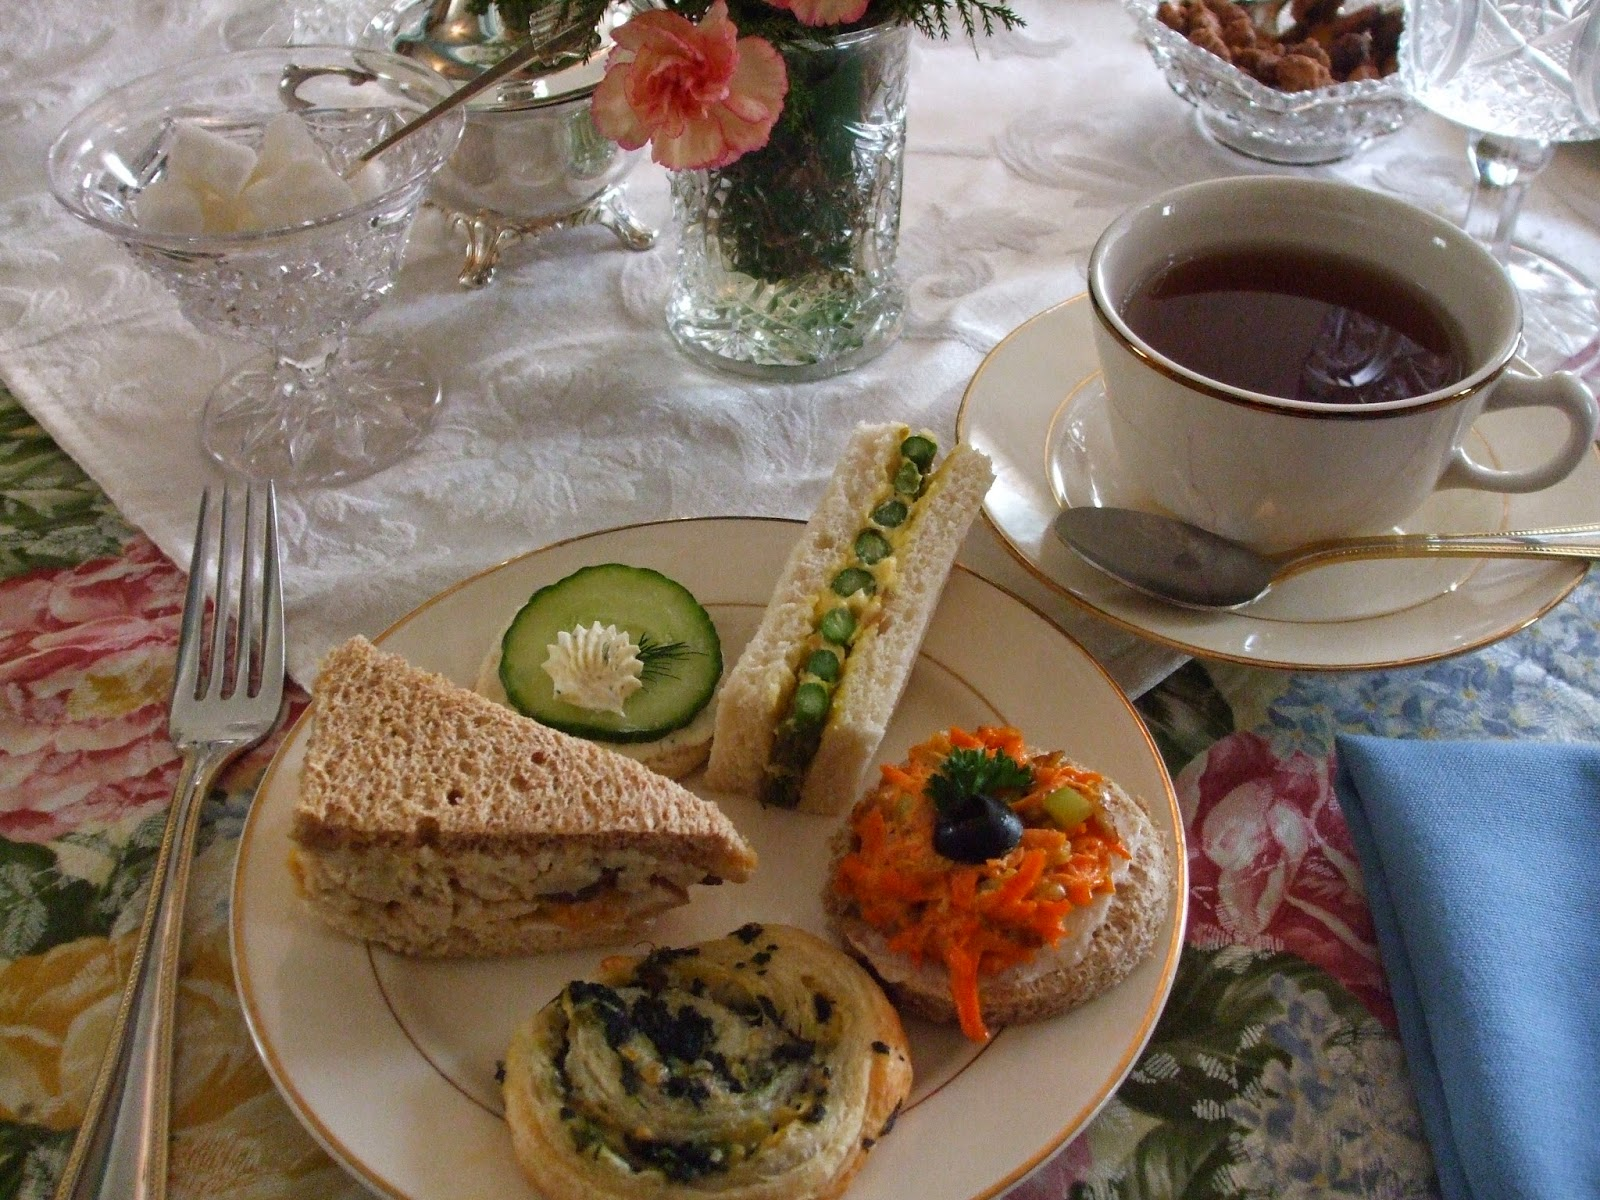 ... Cream Cheese, Asparagus Sandwich with Egg Yolk Butter, and Carrot Tea